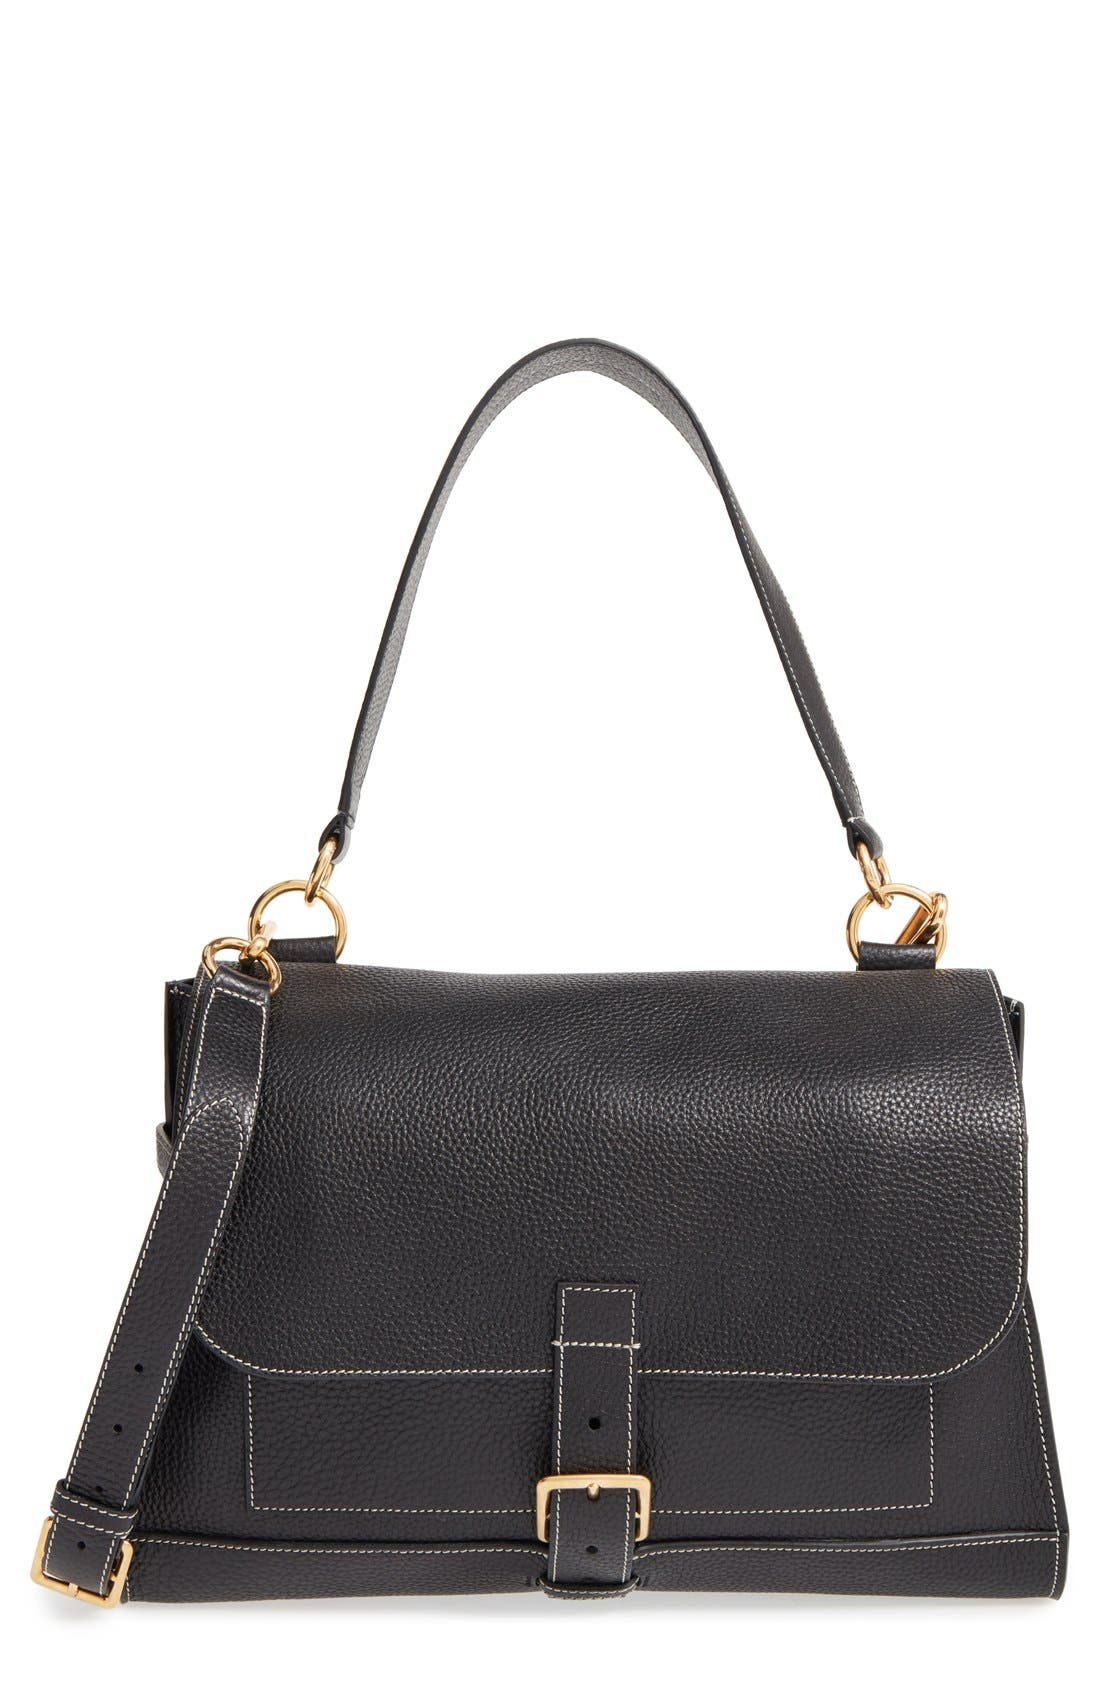 Alternate Image 1 Selected - Mulberry 'Small Buckle' Leather Shoulder Bag